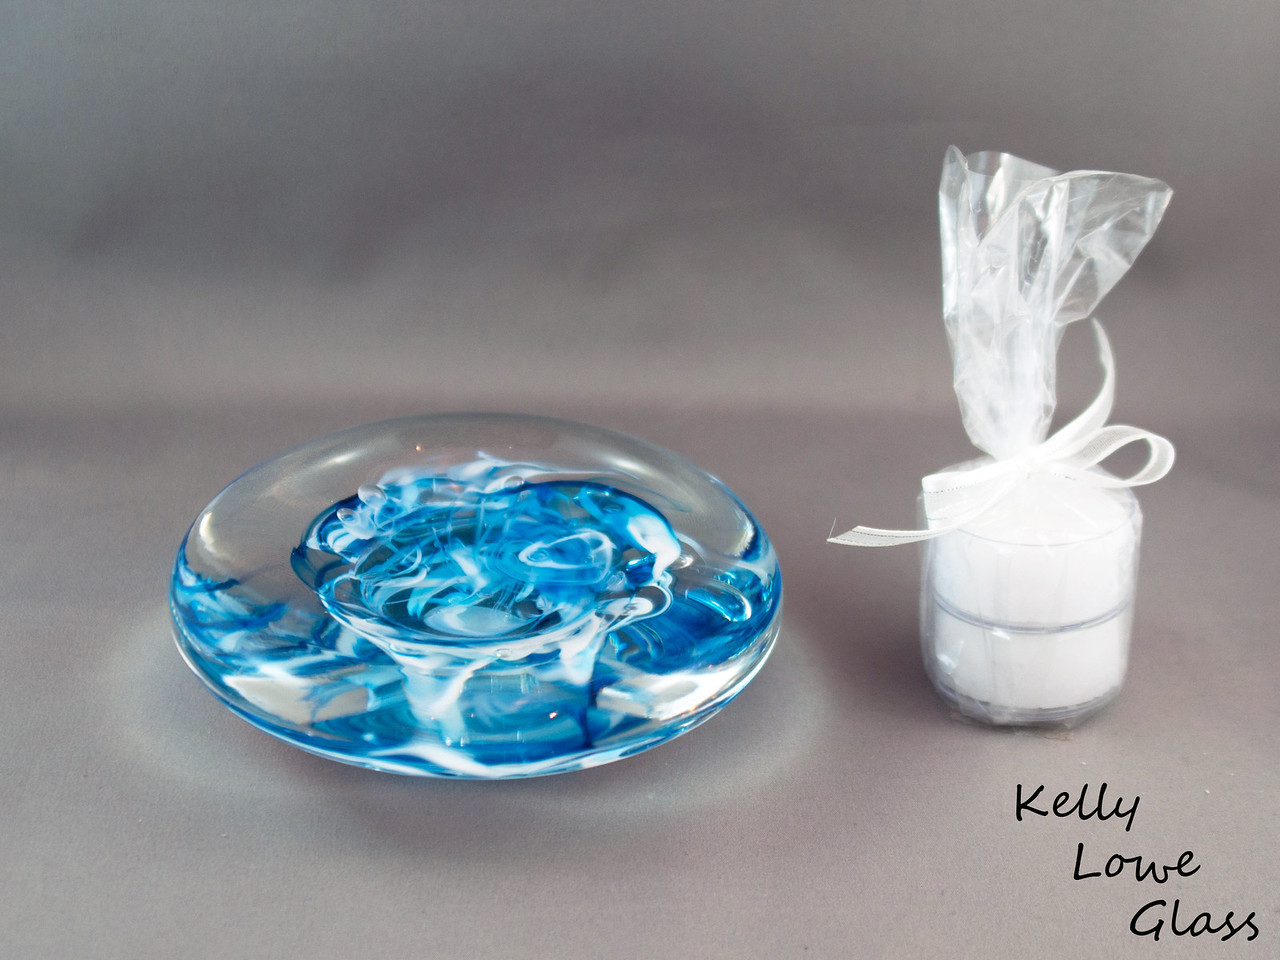 """Blue and White Candle Holder  Dimensions:  Width: Approx 9 to 11.5cm (3.54"""" - 4.53"""") Height: Approx 3 to 3.5cm (1.18"""" - 1.38"""") Weight: Approx 422 to 576g. (0.93 - 1.27 lbs)  Please note: as each piece begins its life as molten glass and is blown/sculpted by hand into the final product, individual pieces might have slight variations in size and/or appearance. Please rest assured however that the standard of quality is quite high, and no substandard pieces will be sold."""